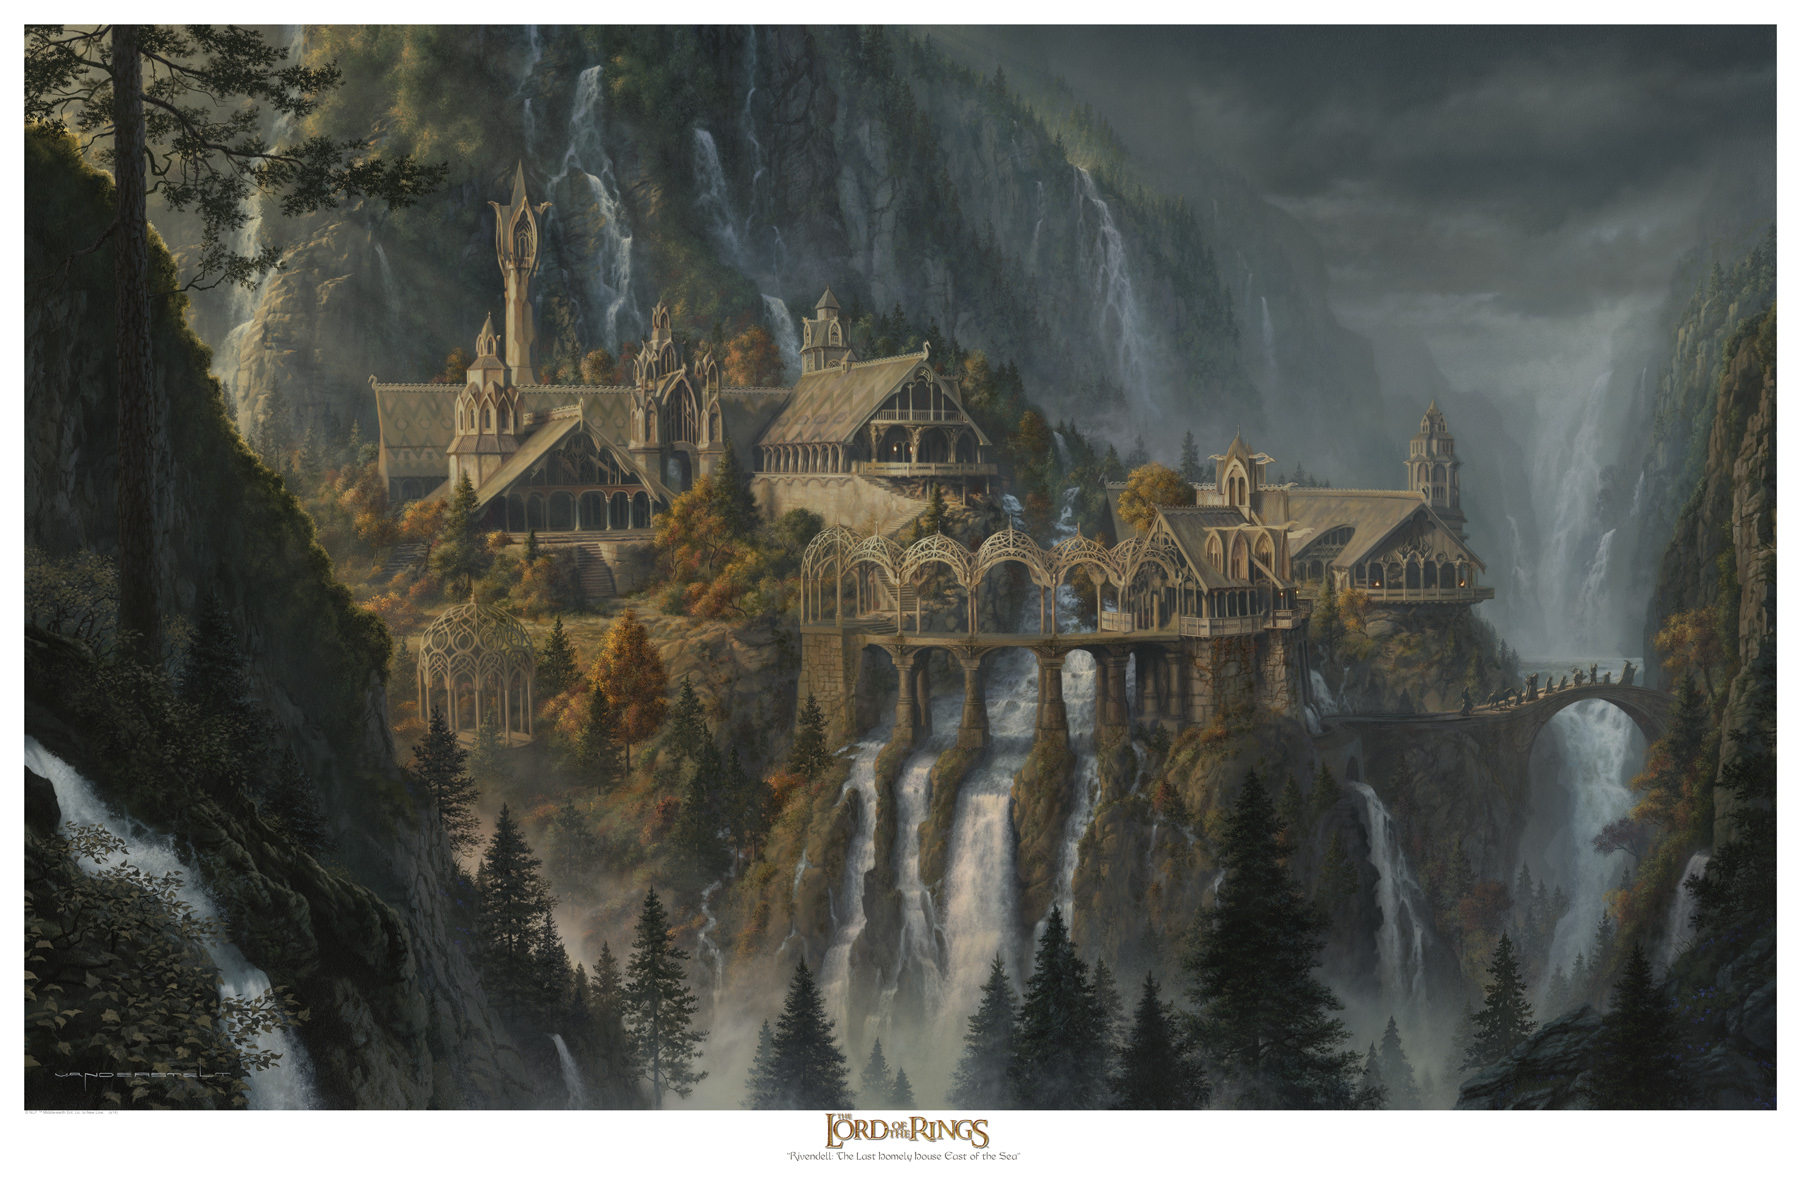 Collecting The Precious Vanderstelt Studio Rivendell Art